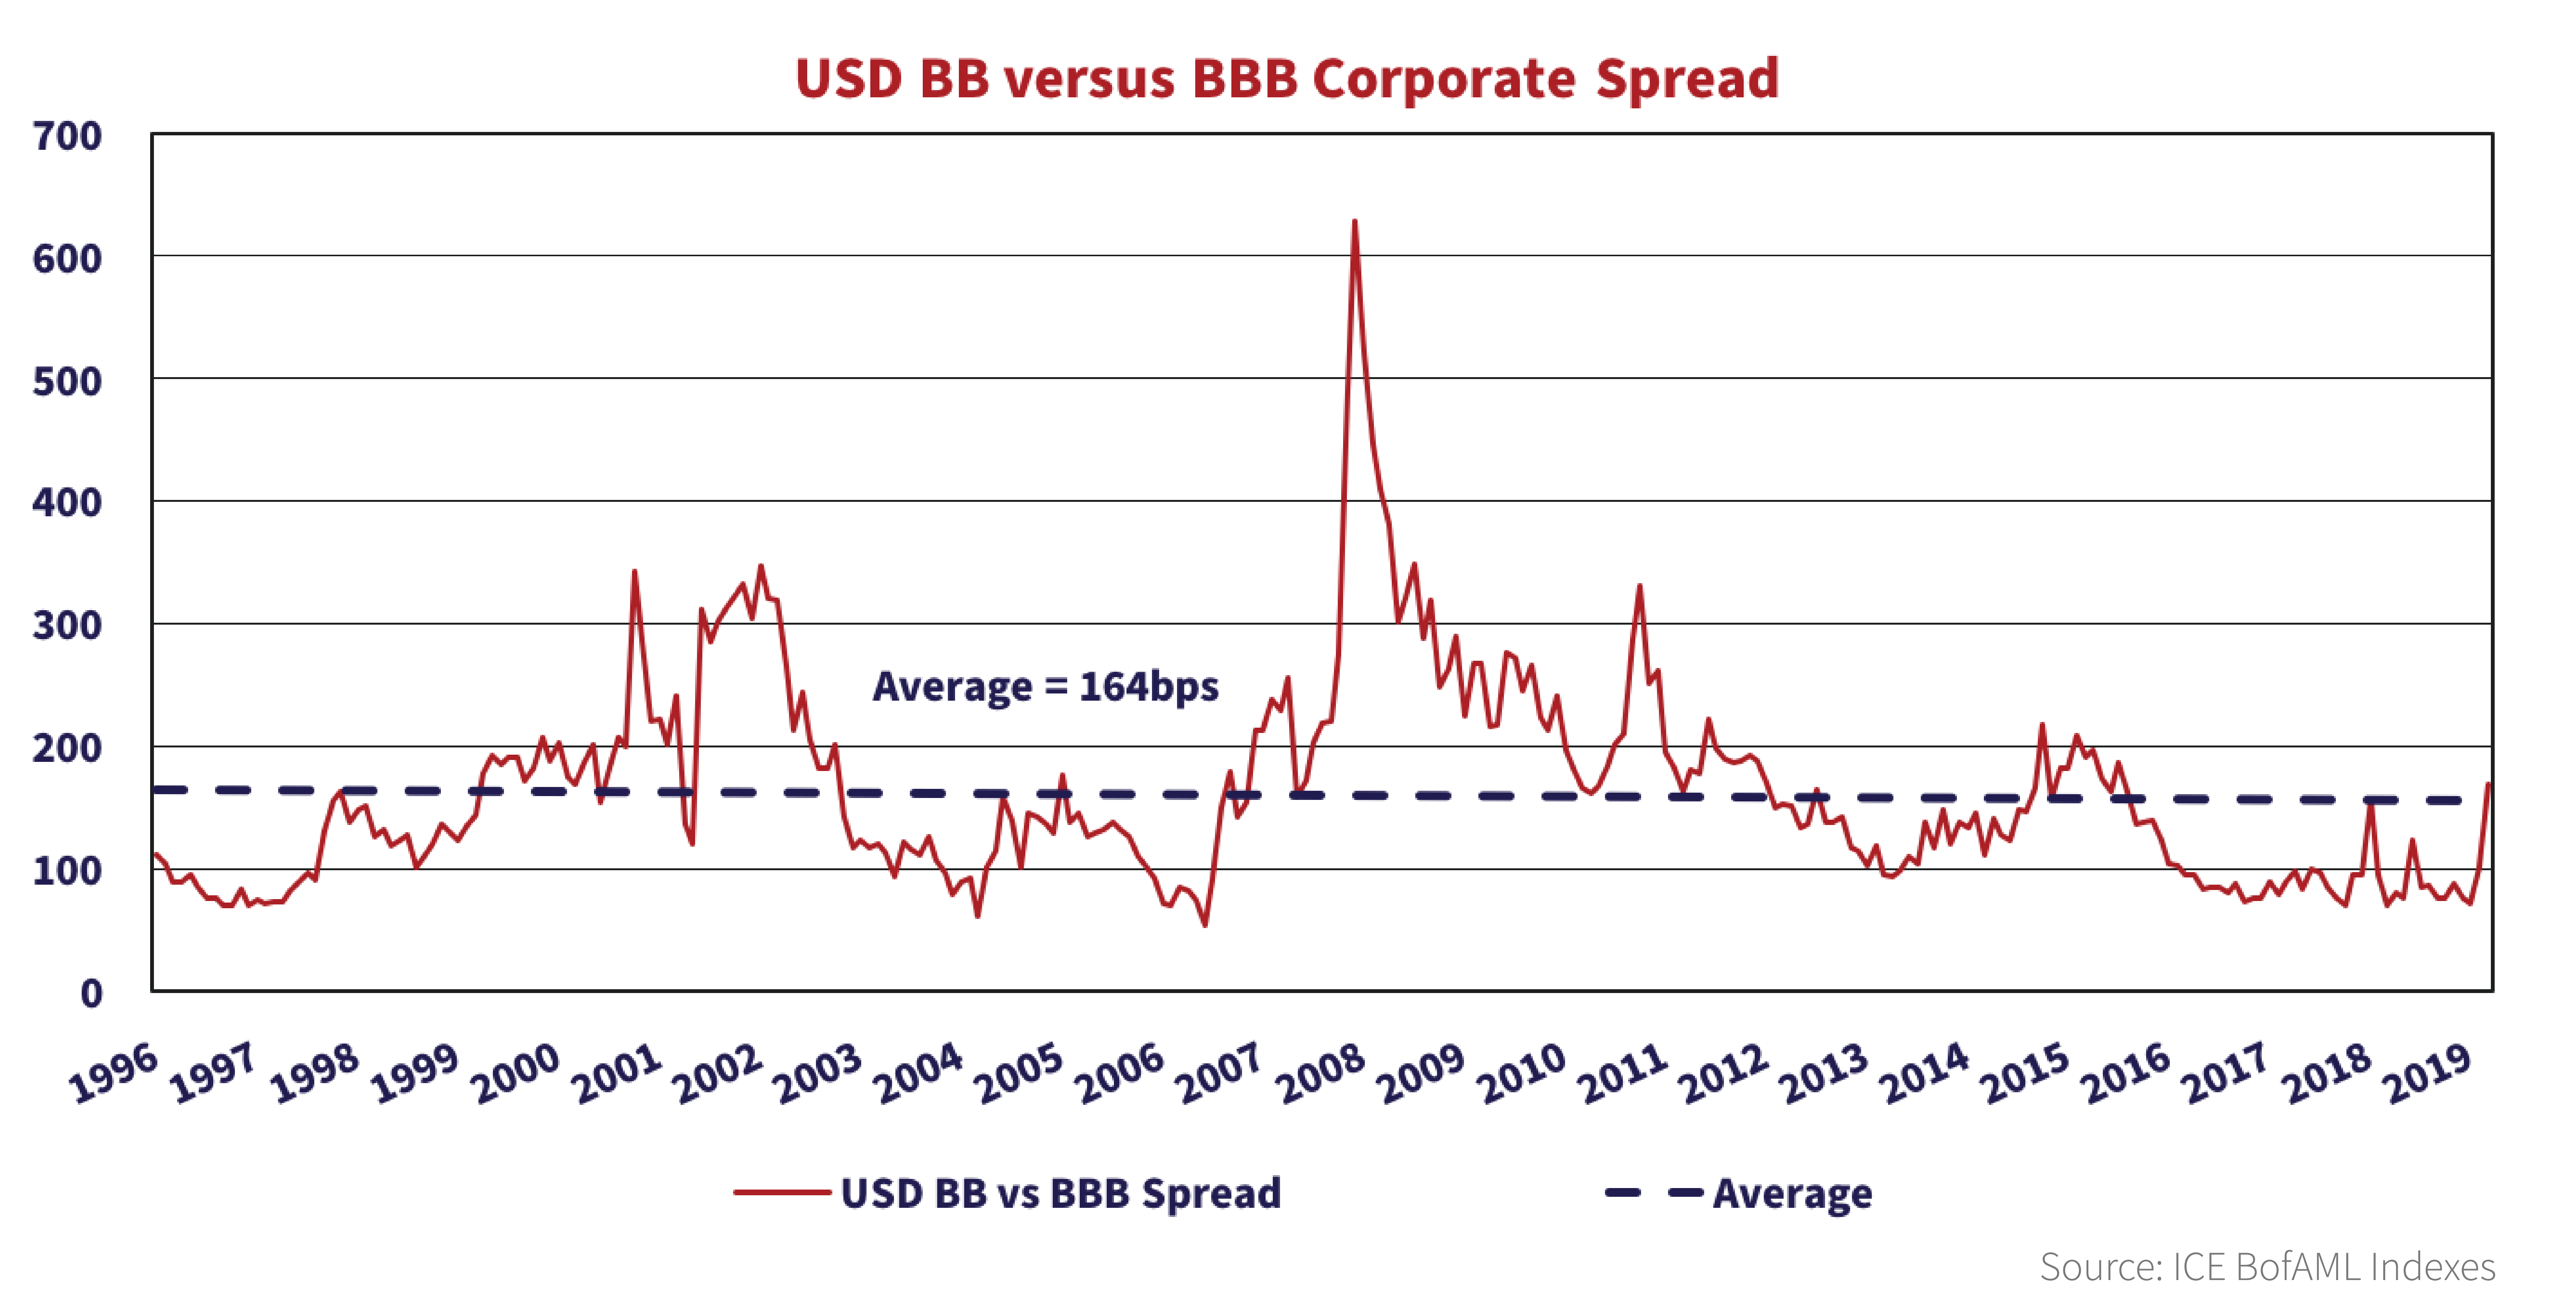 The line graph shows the USD BB versus BBB corporate spread over the years starting at 1996 to 2020.